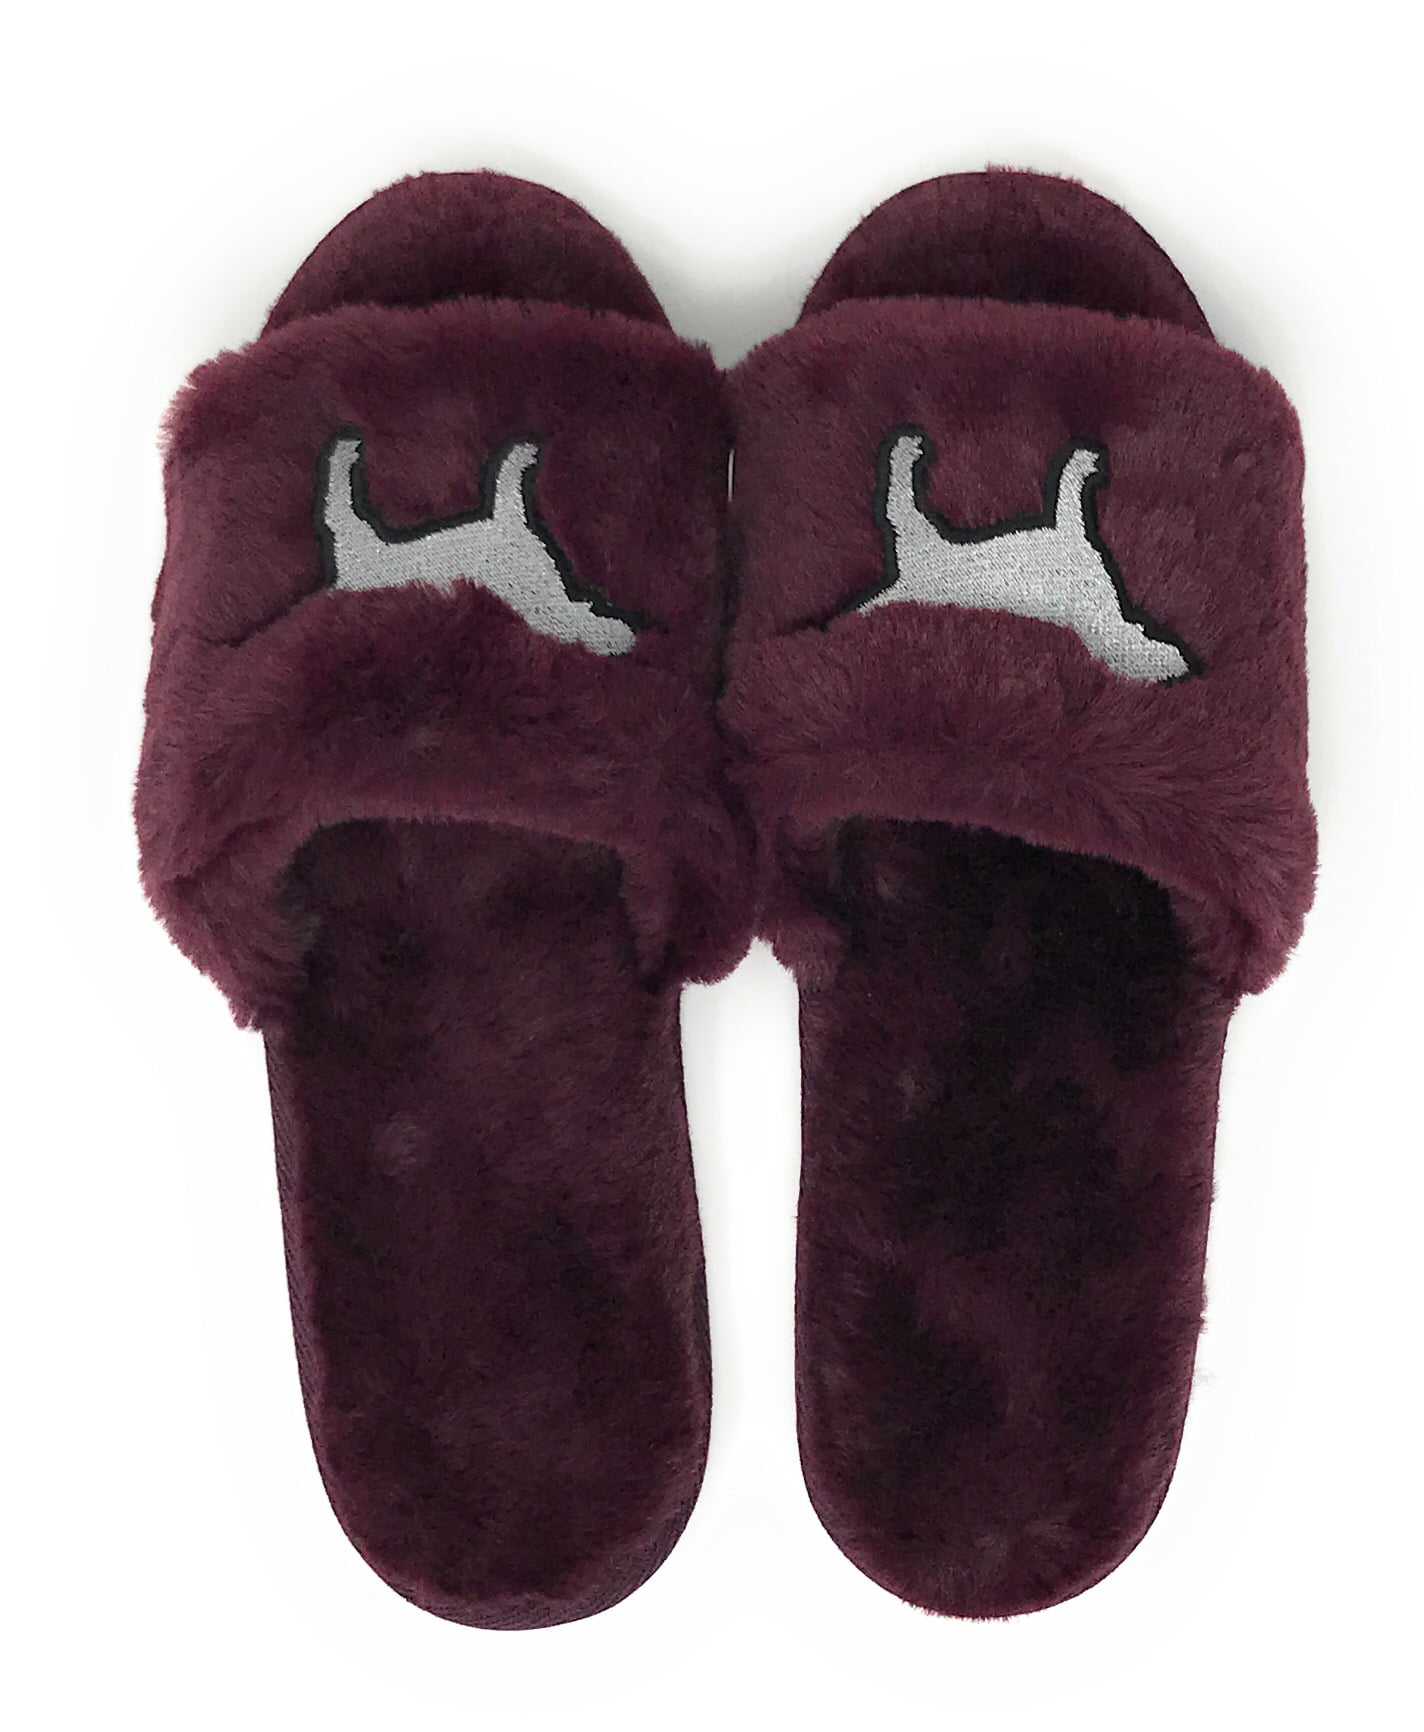 Fuzzy Slippers Black Orchid